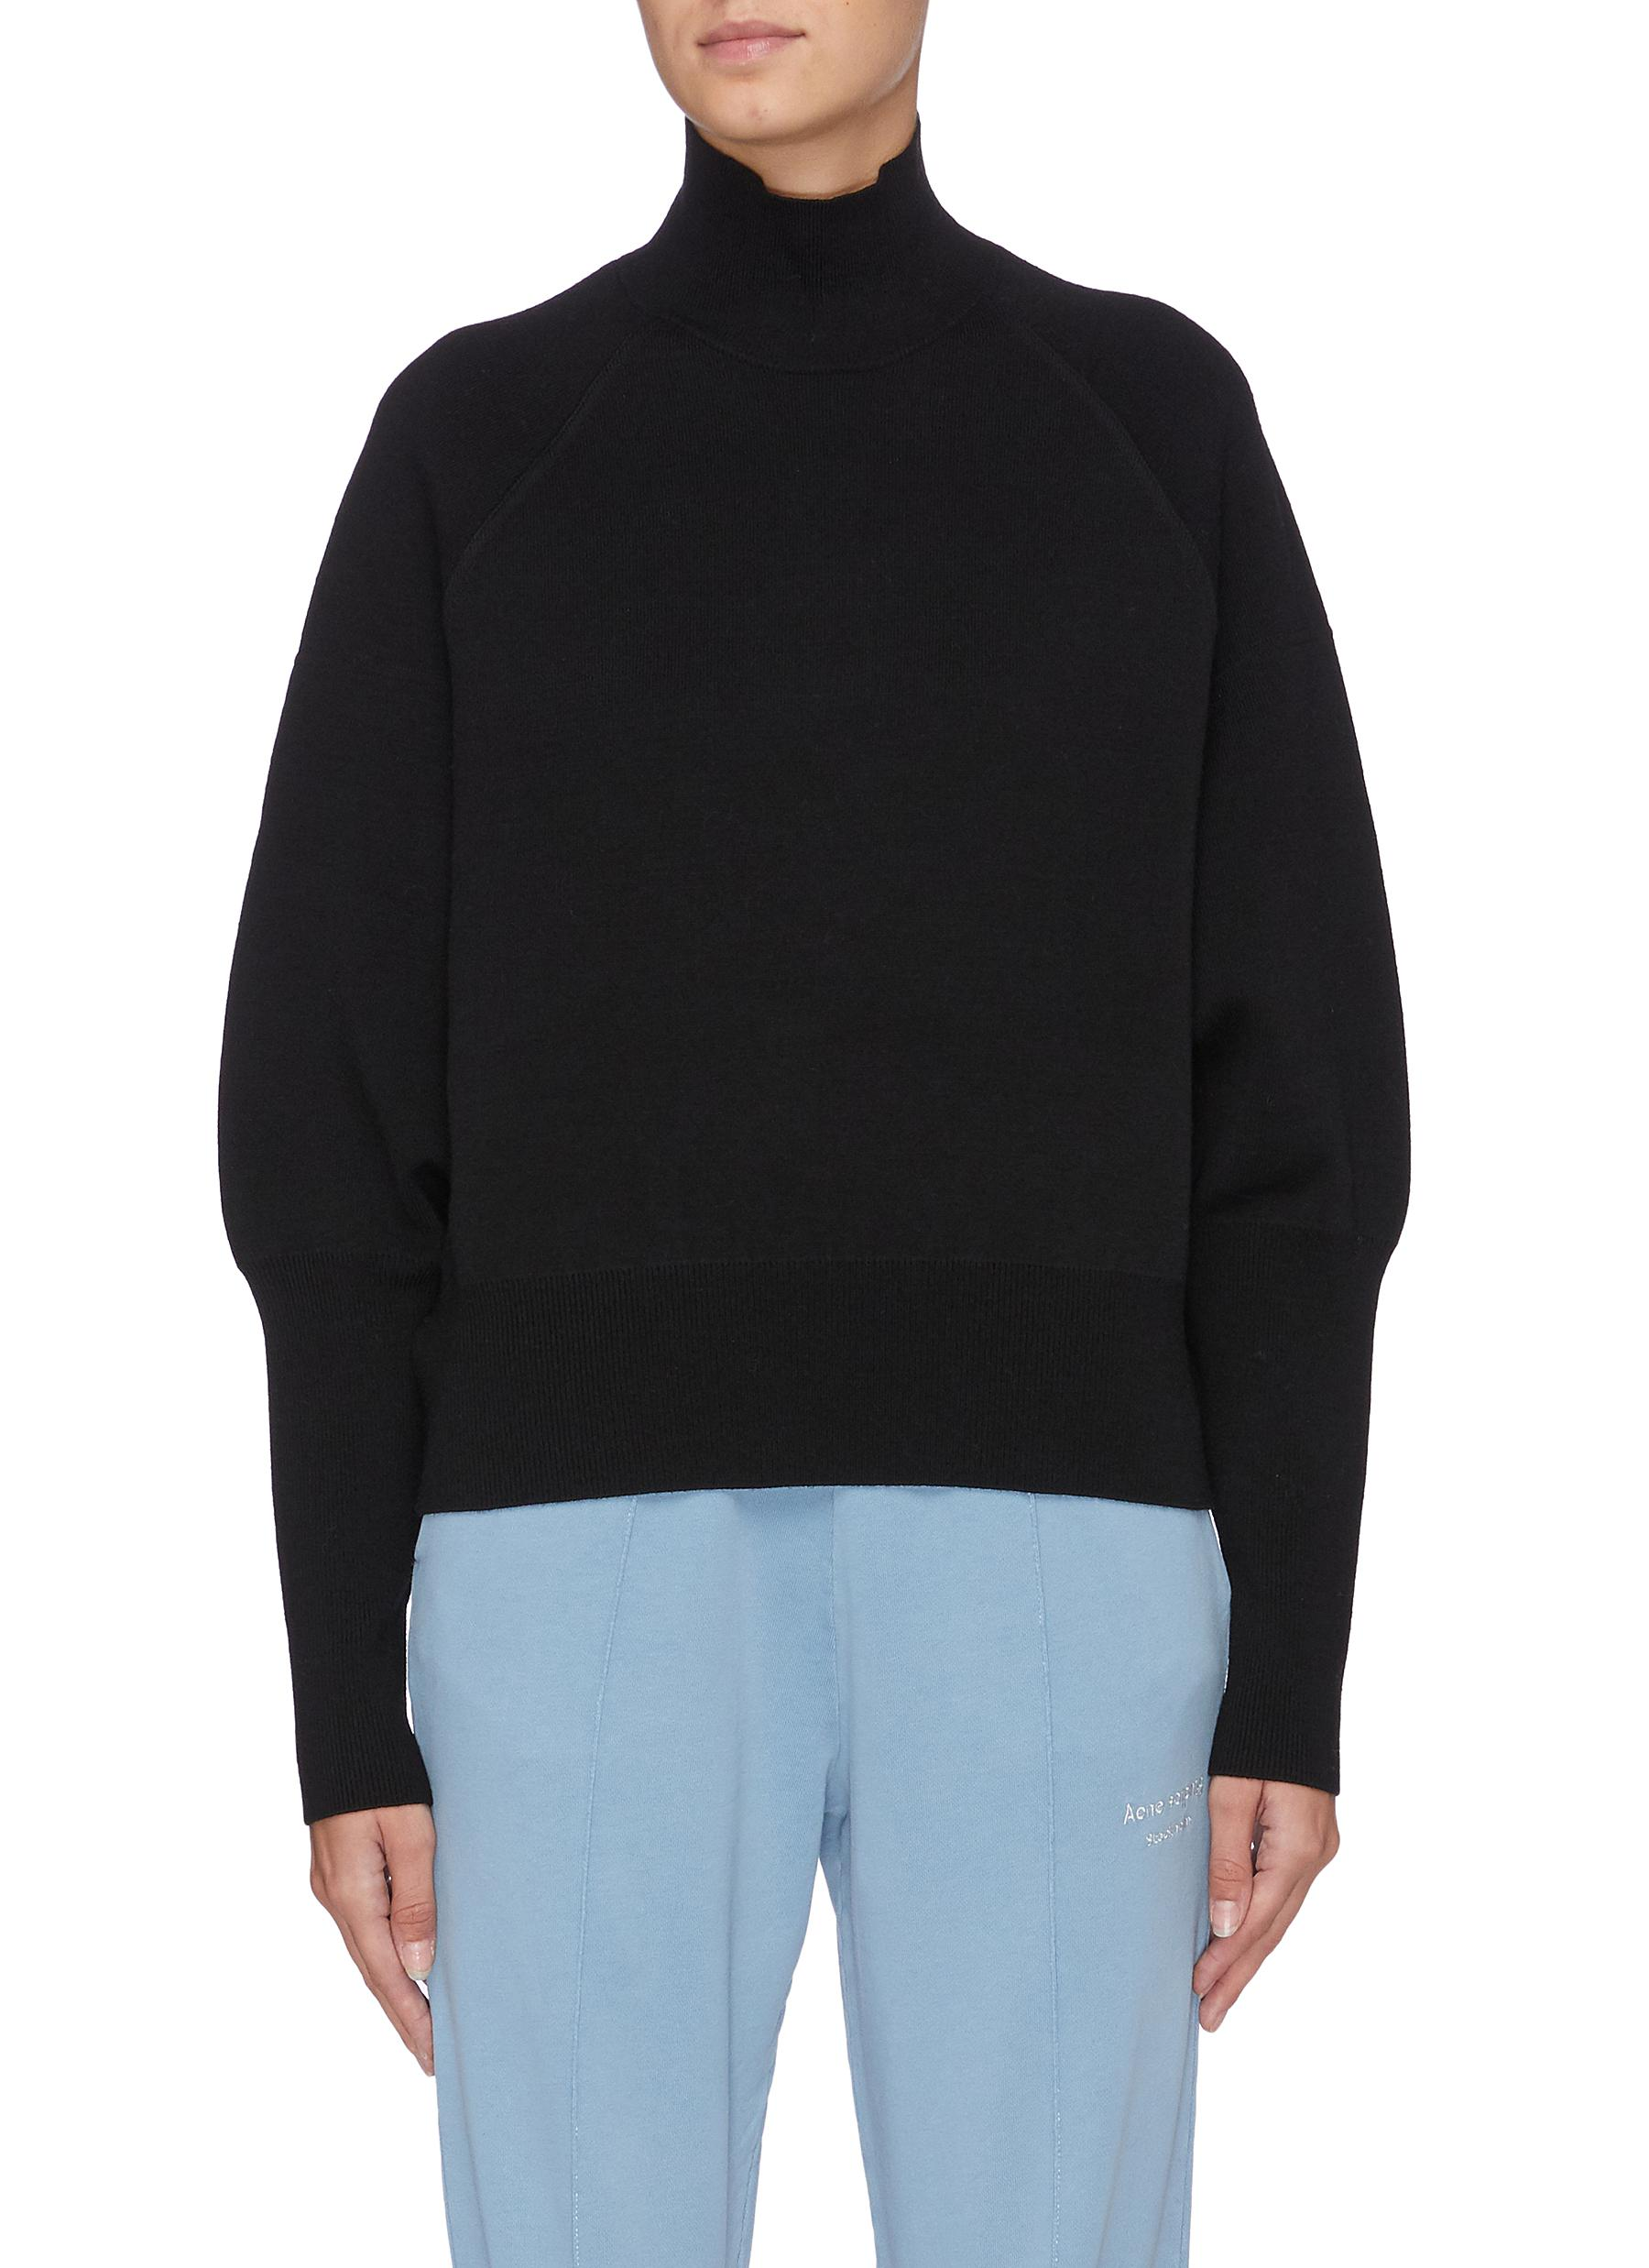 Puff sleeve turtleneck sweater by Acne Studios